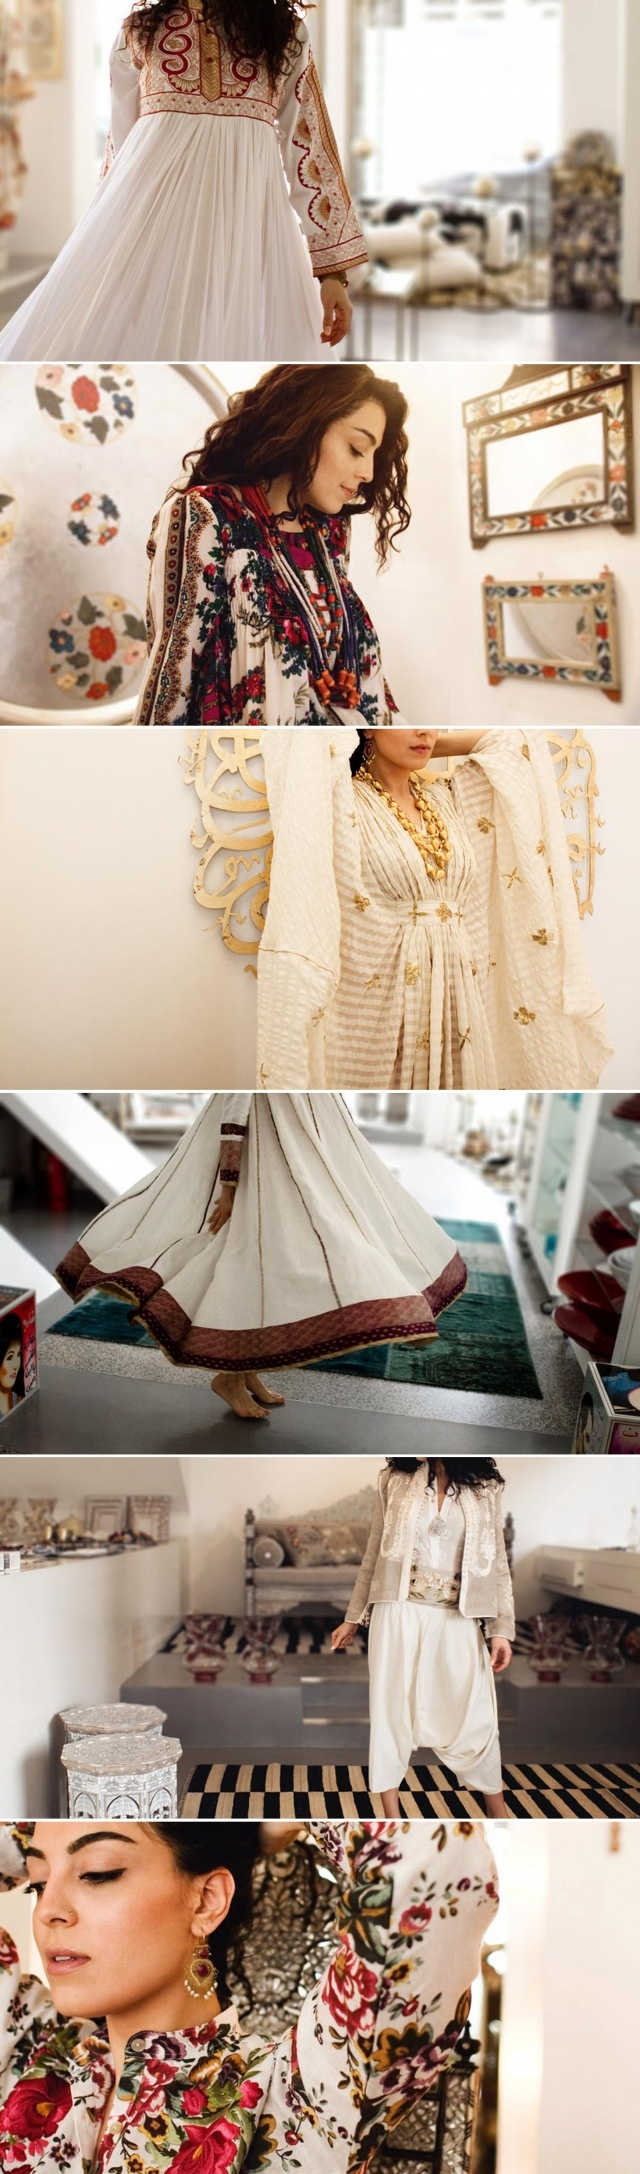 Orient 499 http://www.orient499.com/ – An eclectic #Boutique in #Beirut, found by Aida Kawas & Frank Luca